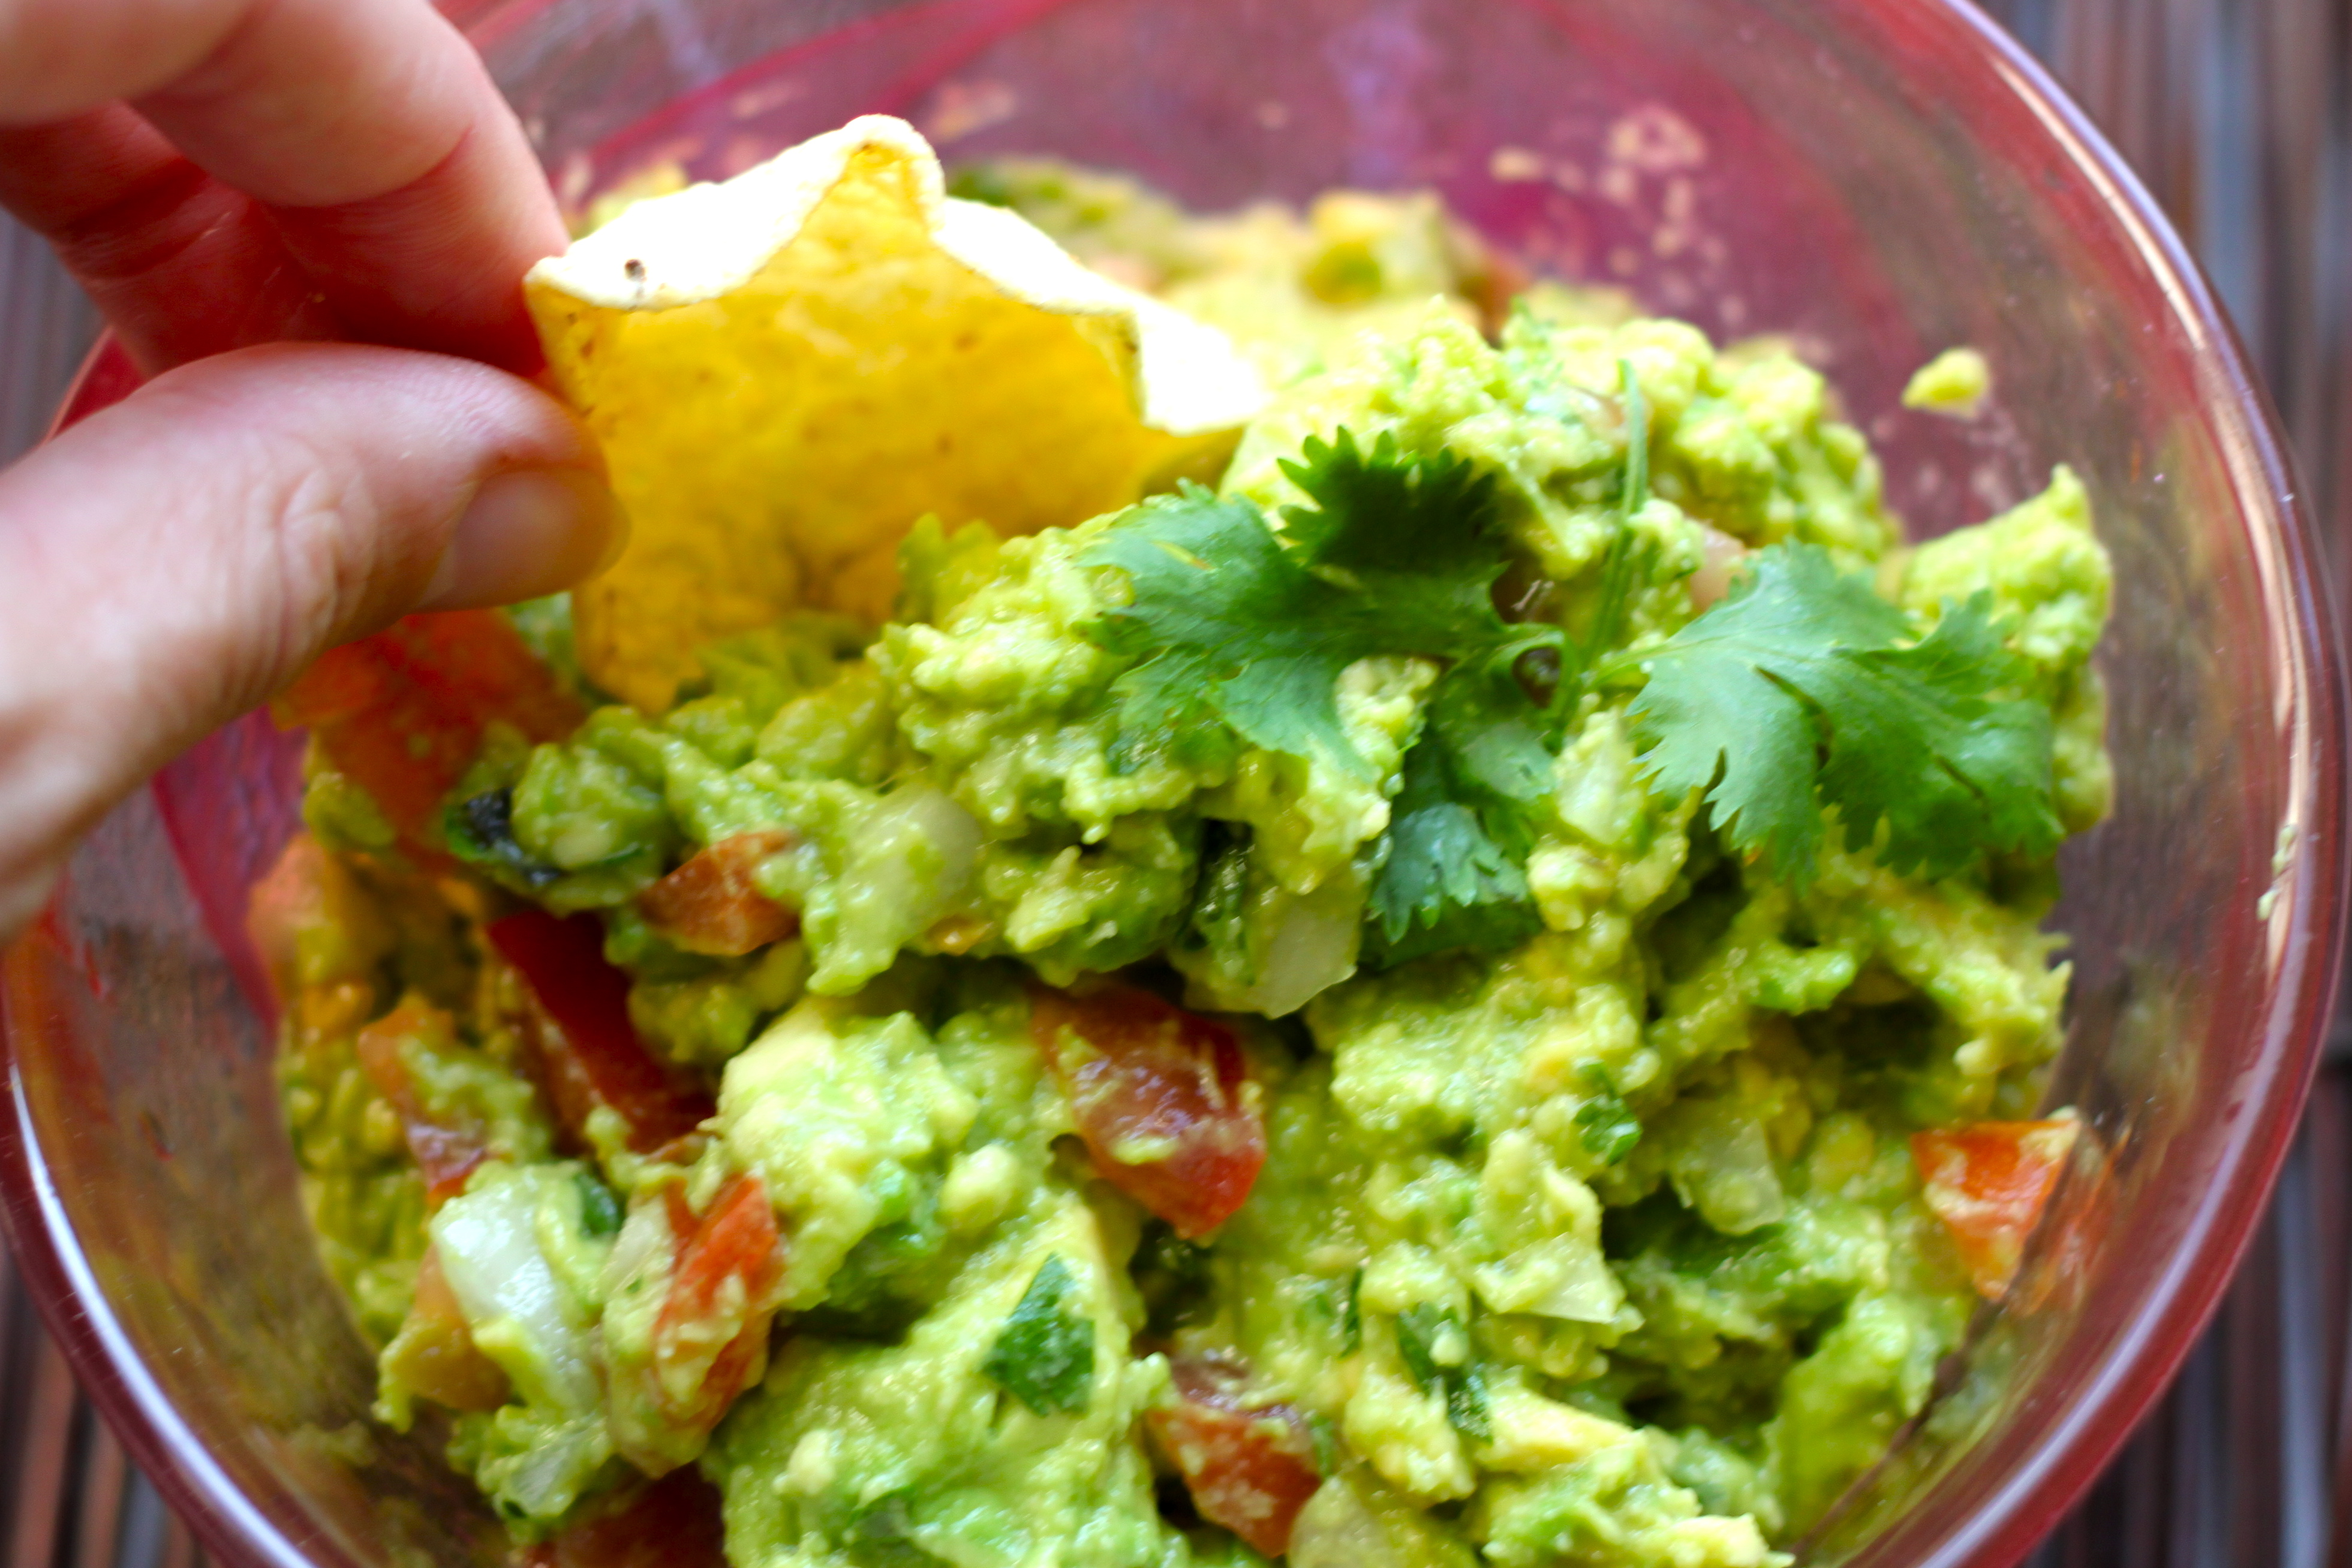 ... best guacamole ever picture the best guacamole you ever the best basic